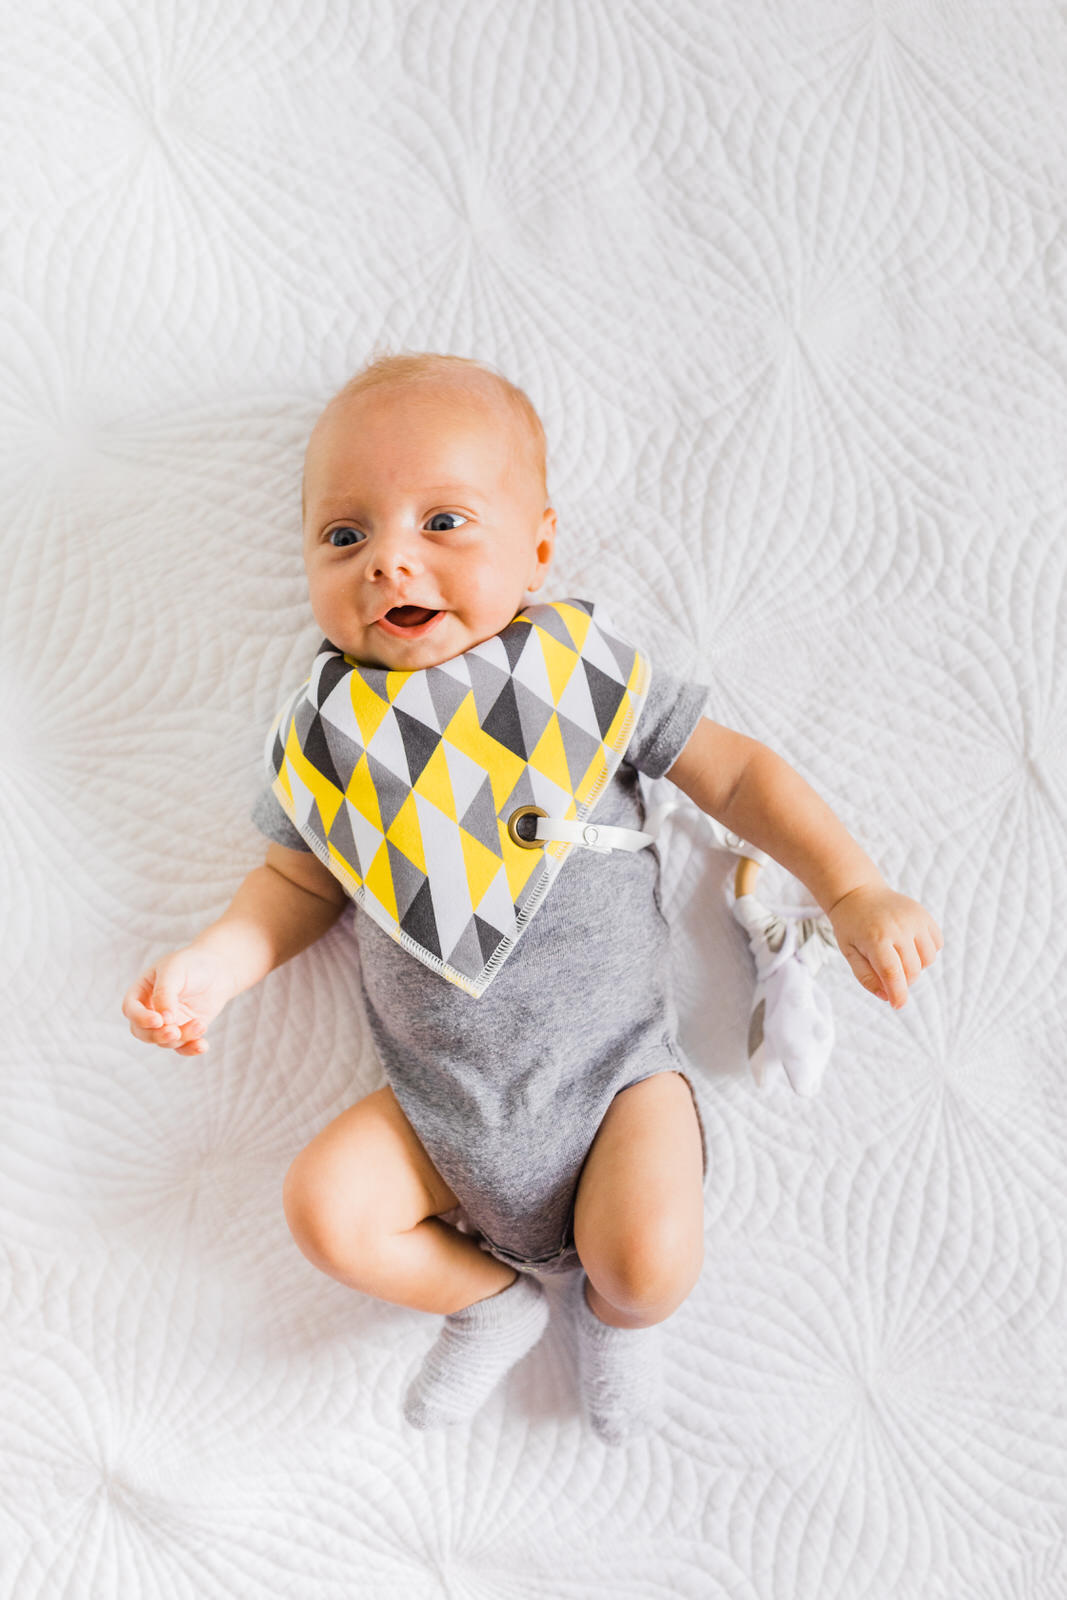 kids-clothes-small-business-baby-newborn-collaboration-7616.jpg